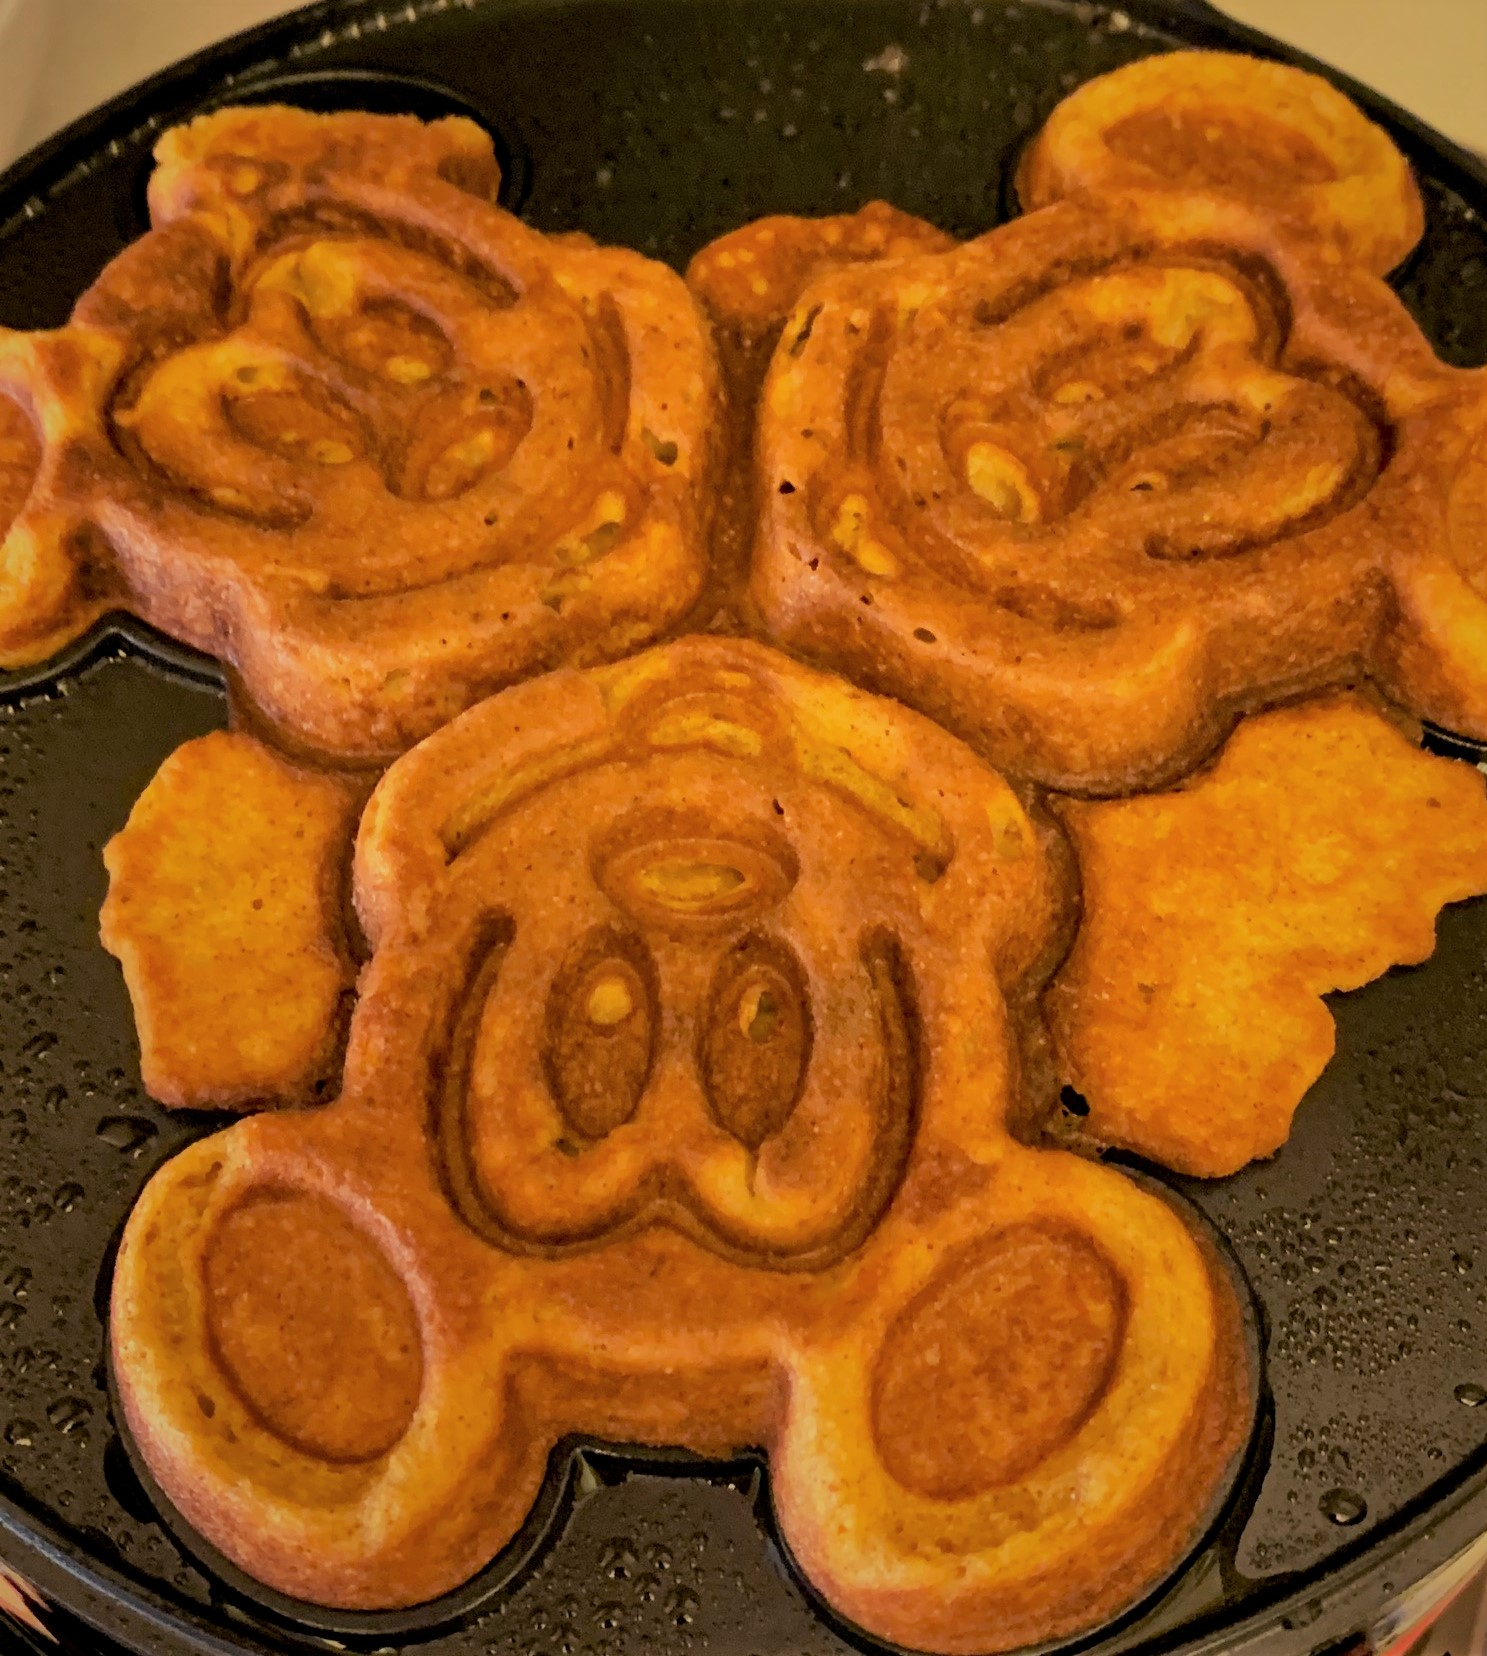 Our cooked Pumpkin Mickey Waffles - Pumpkin Spice Waffle Sundae